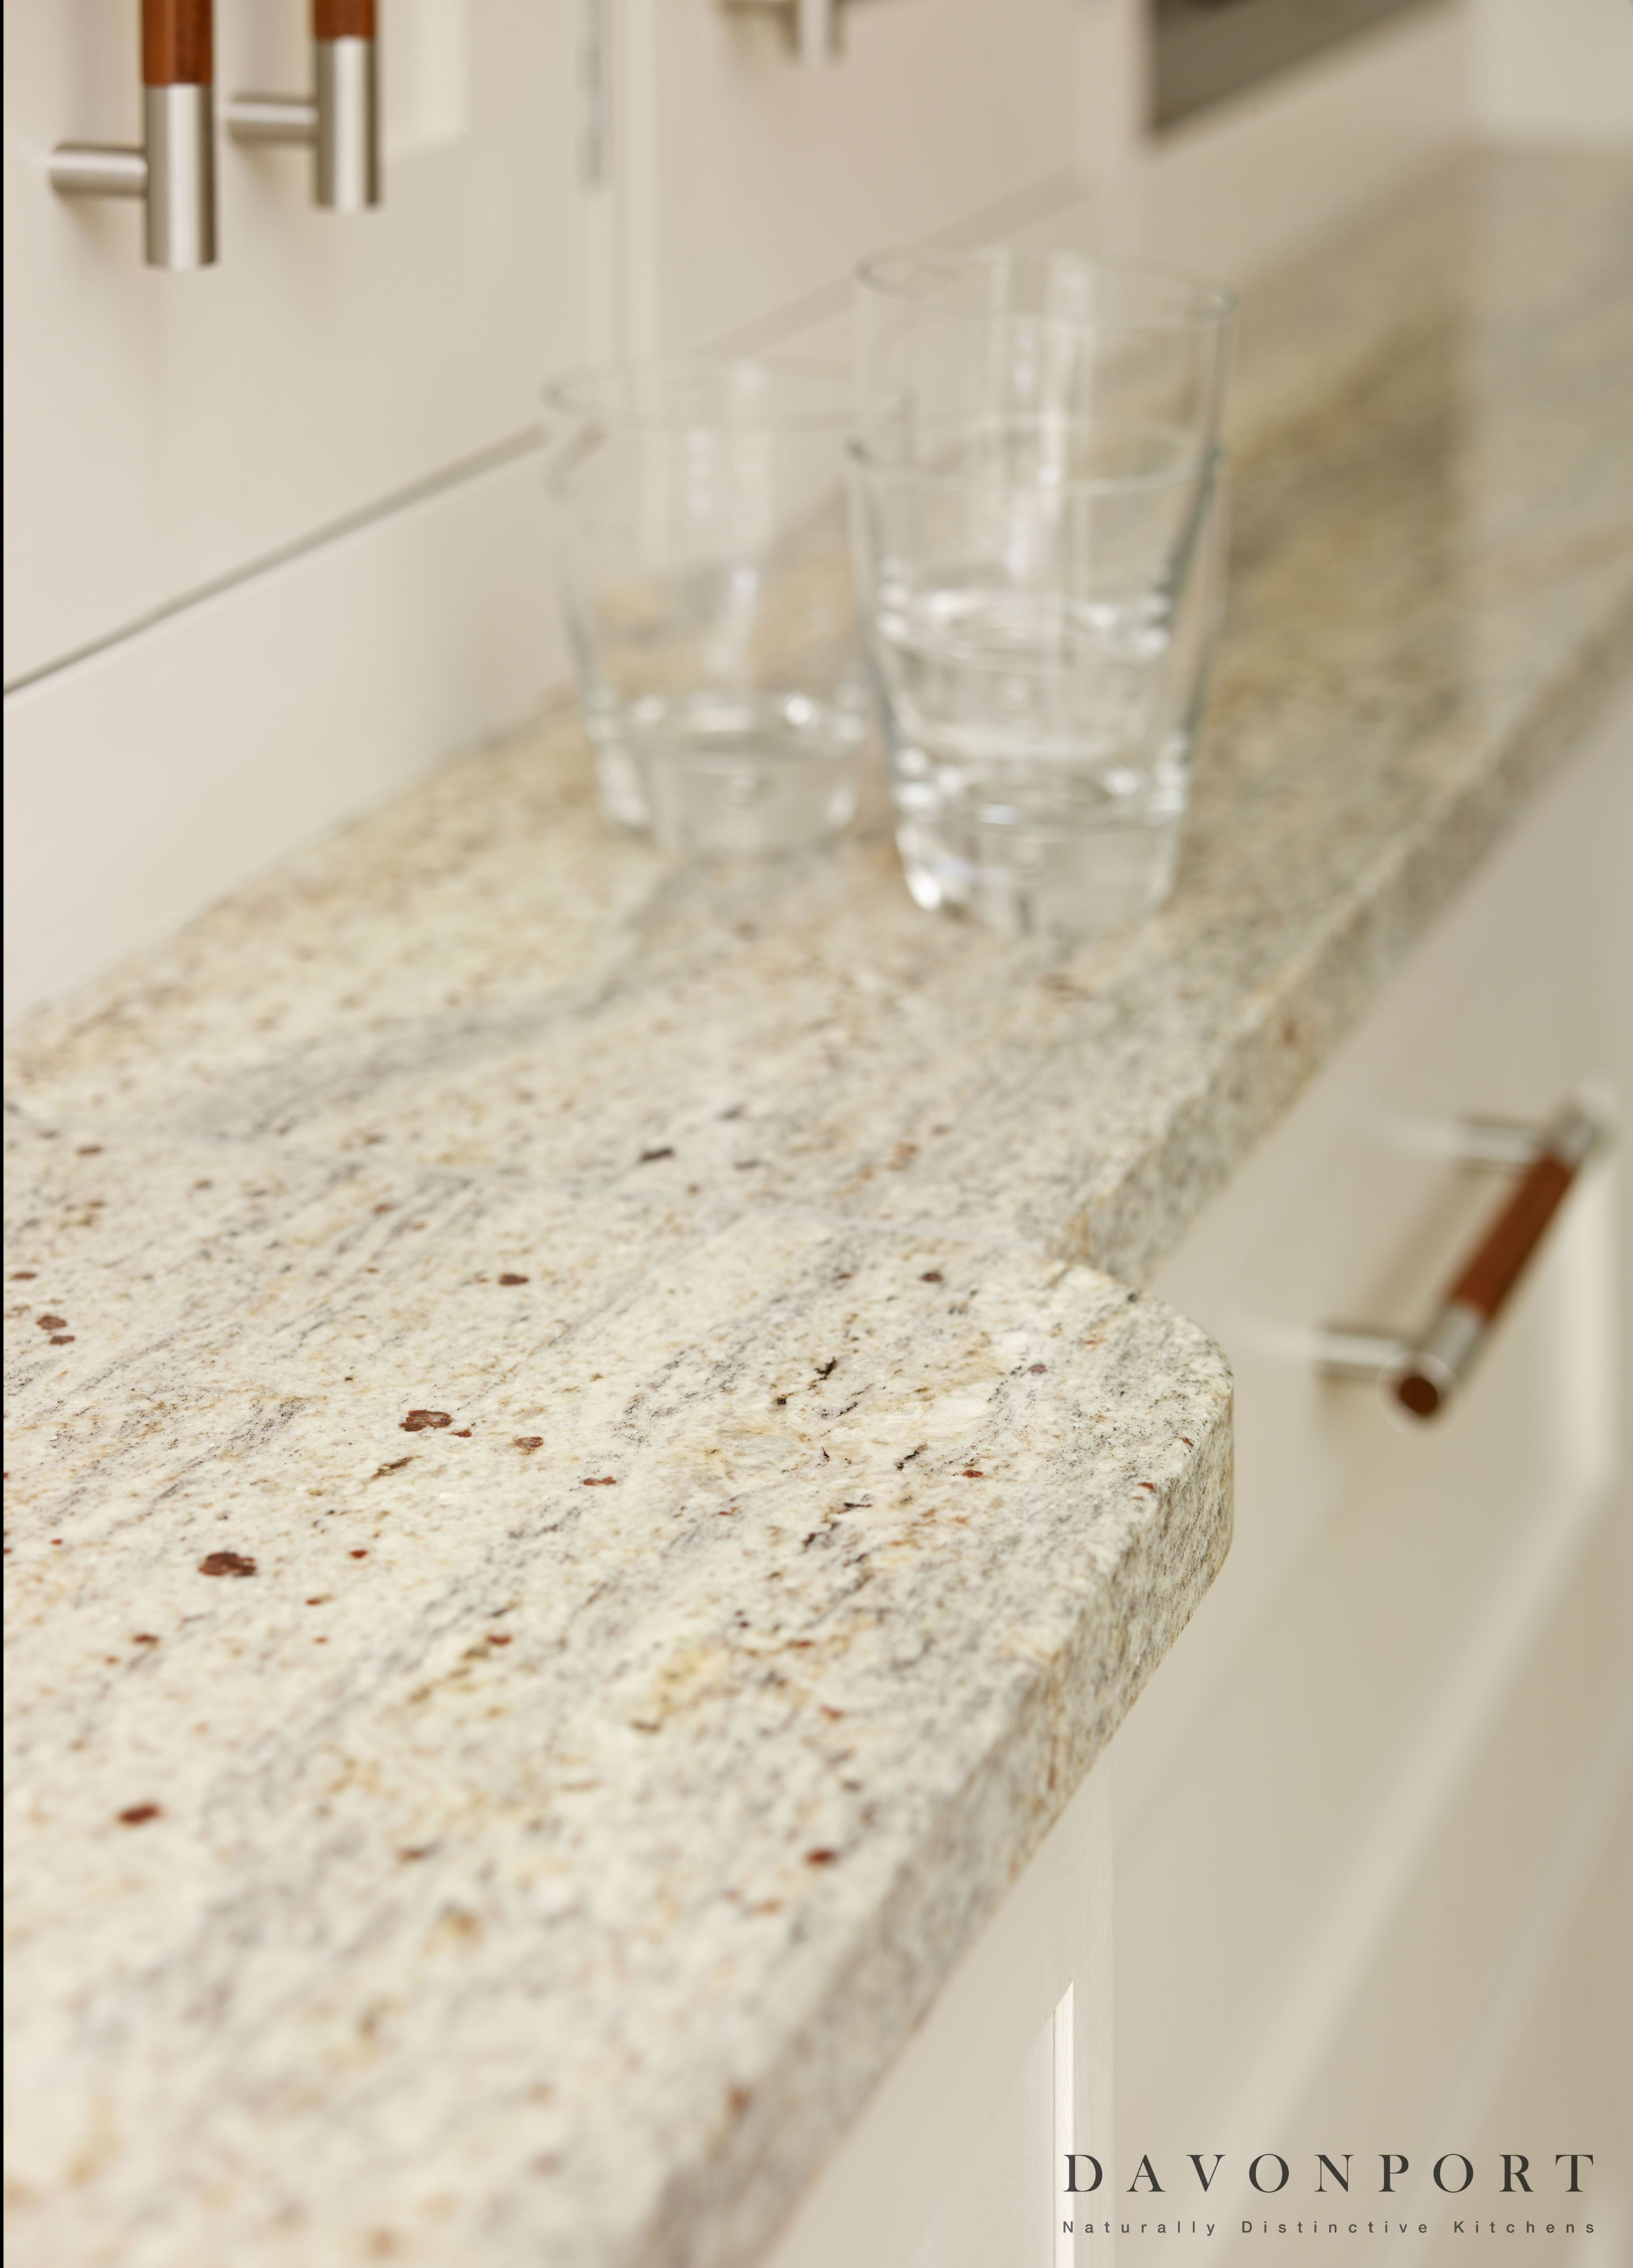 The Kashmir White Granite Worktops Are Perfectly In Keeping With